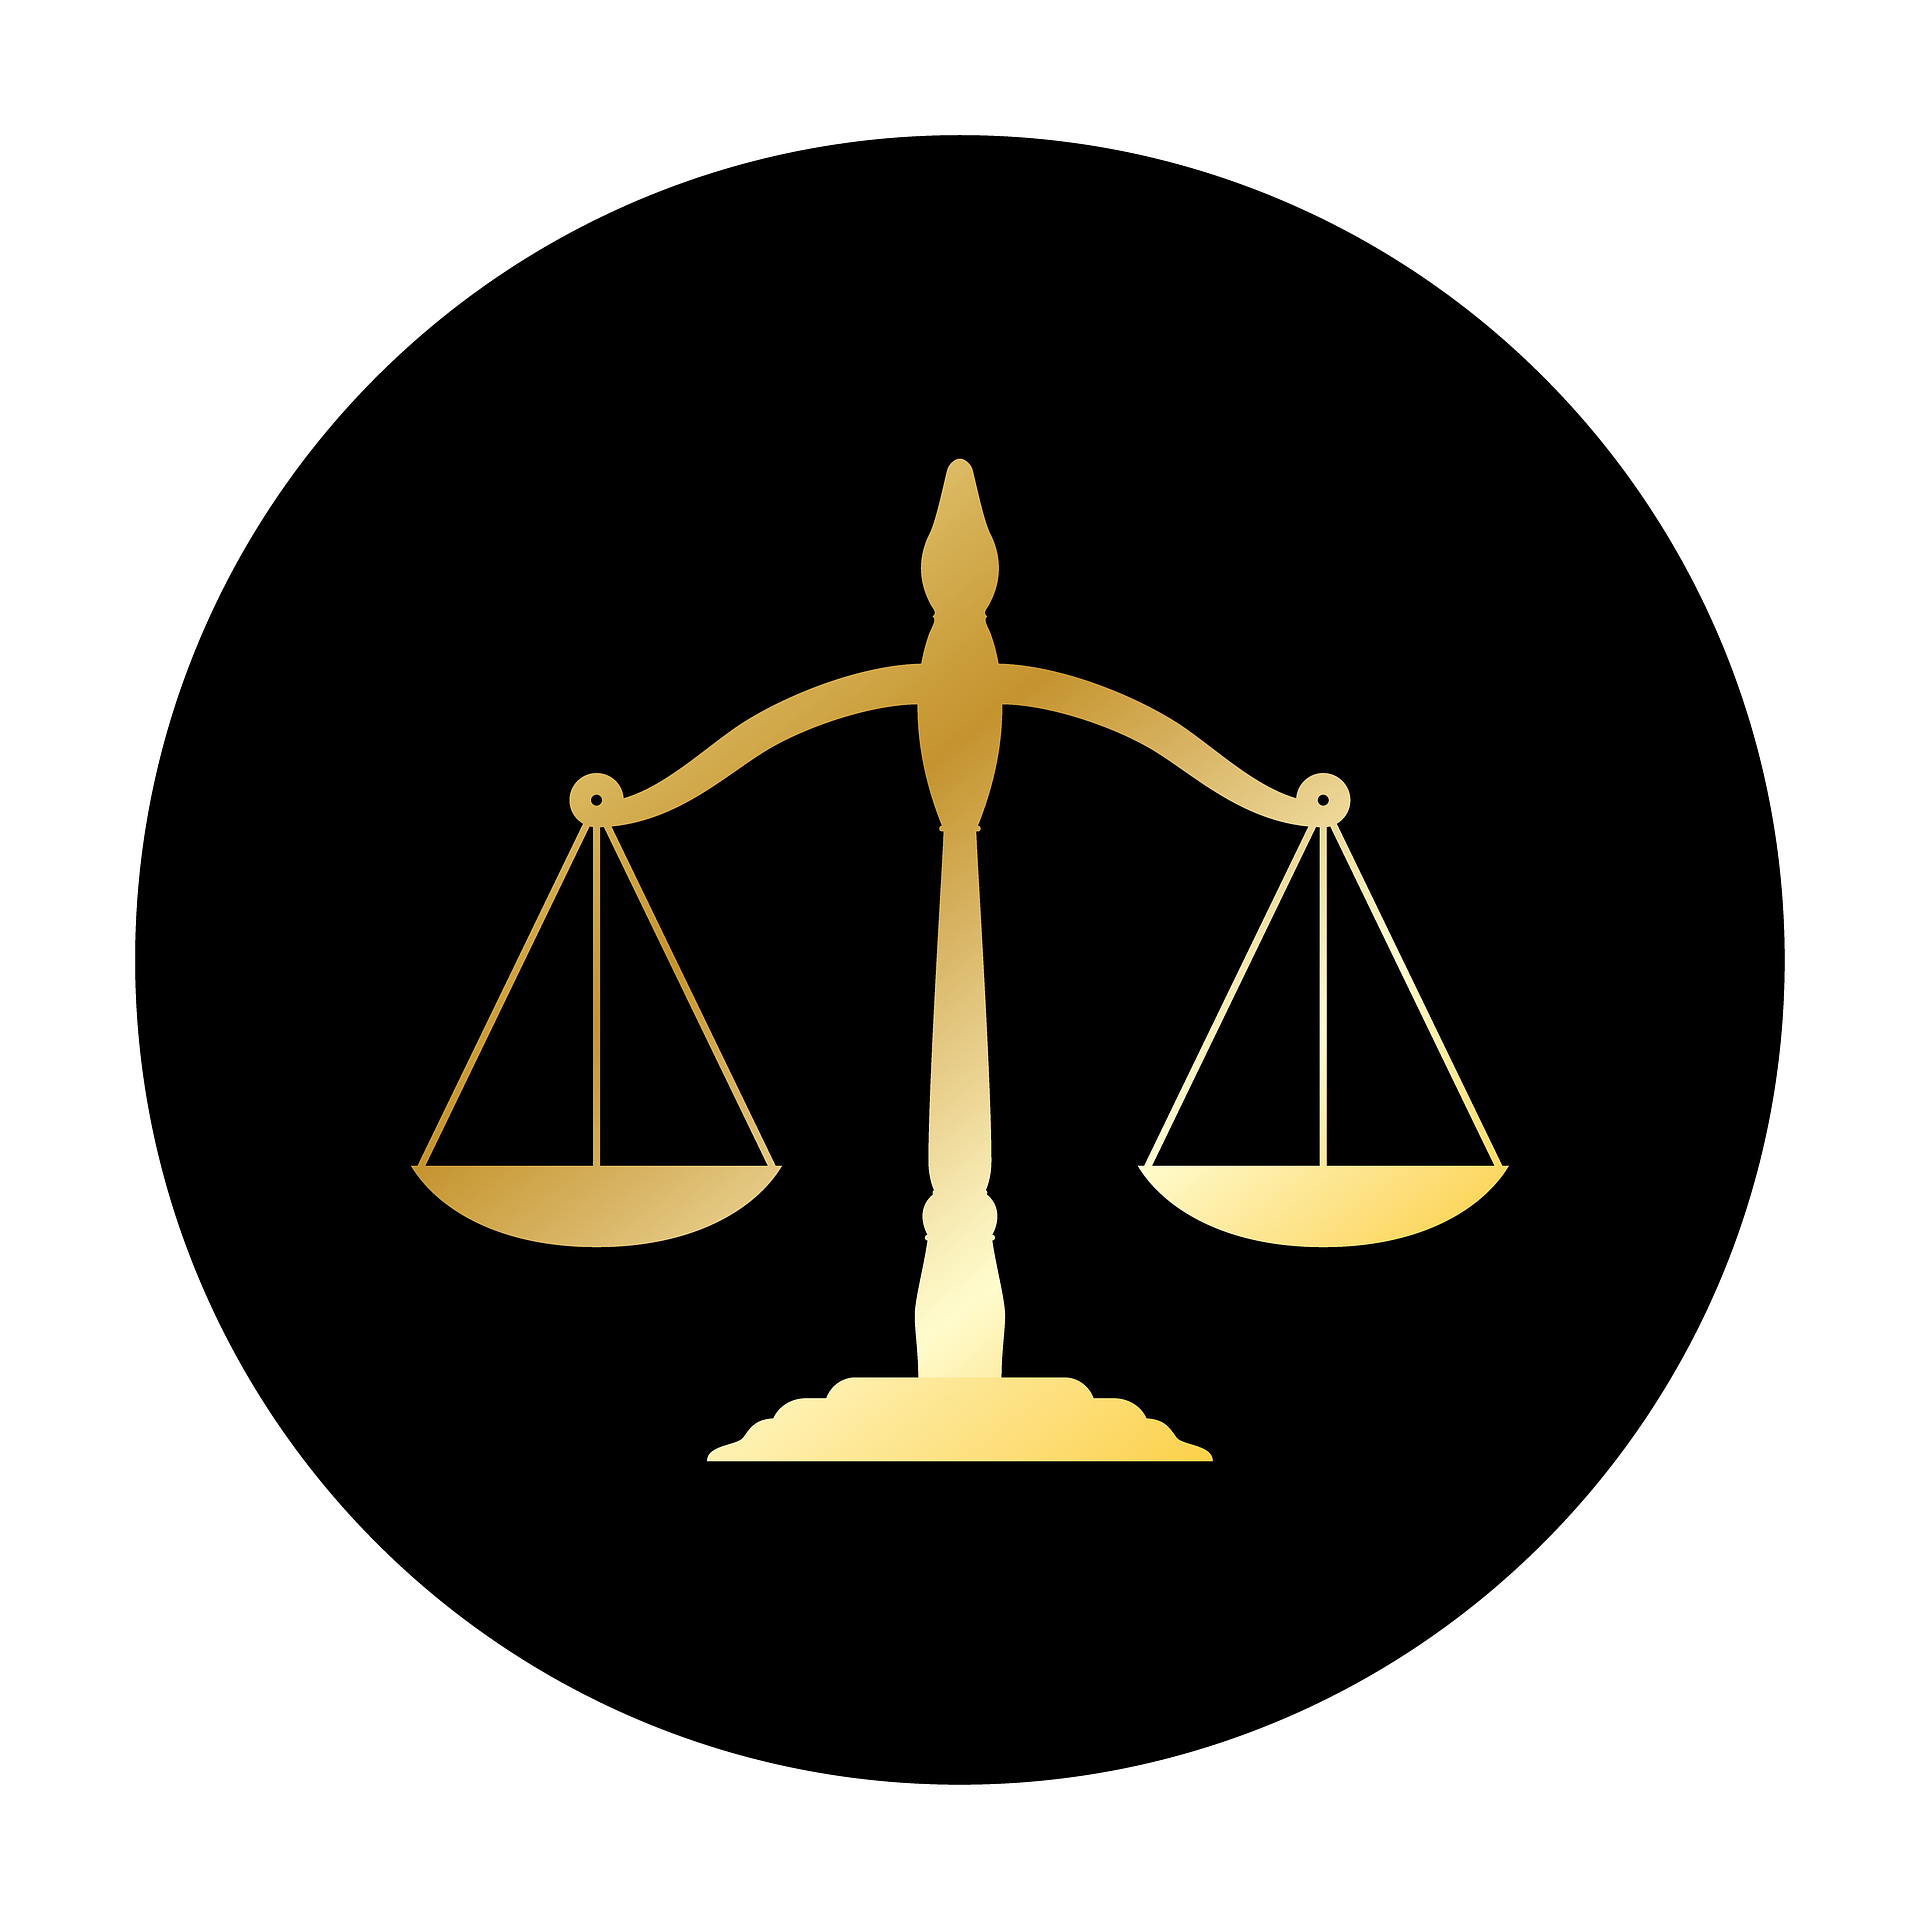 scales-of-justice-450198_1920